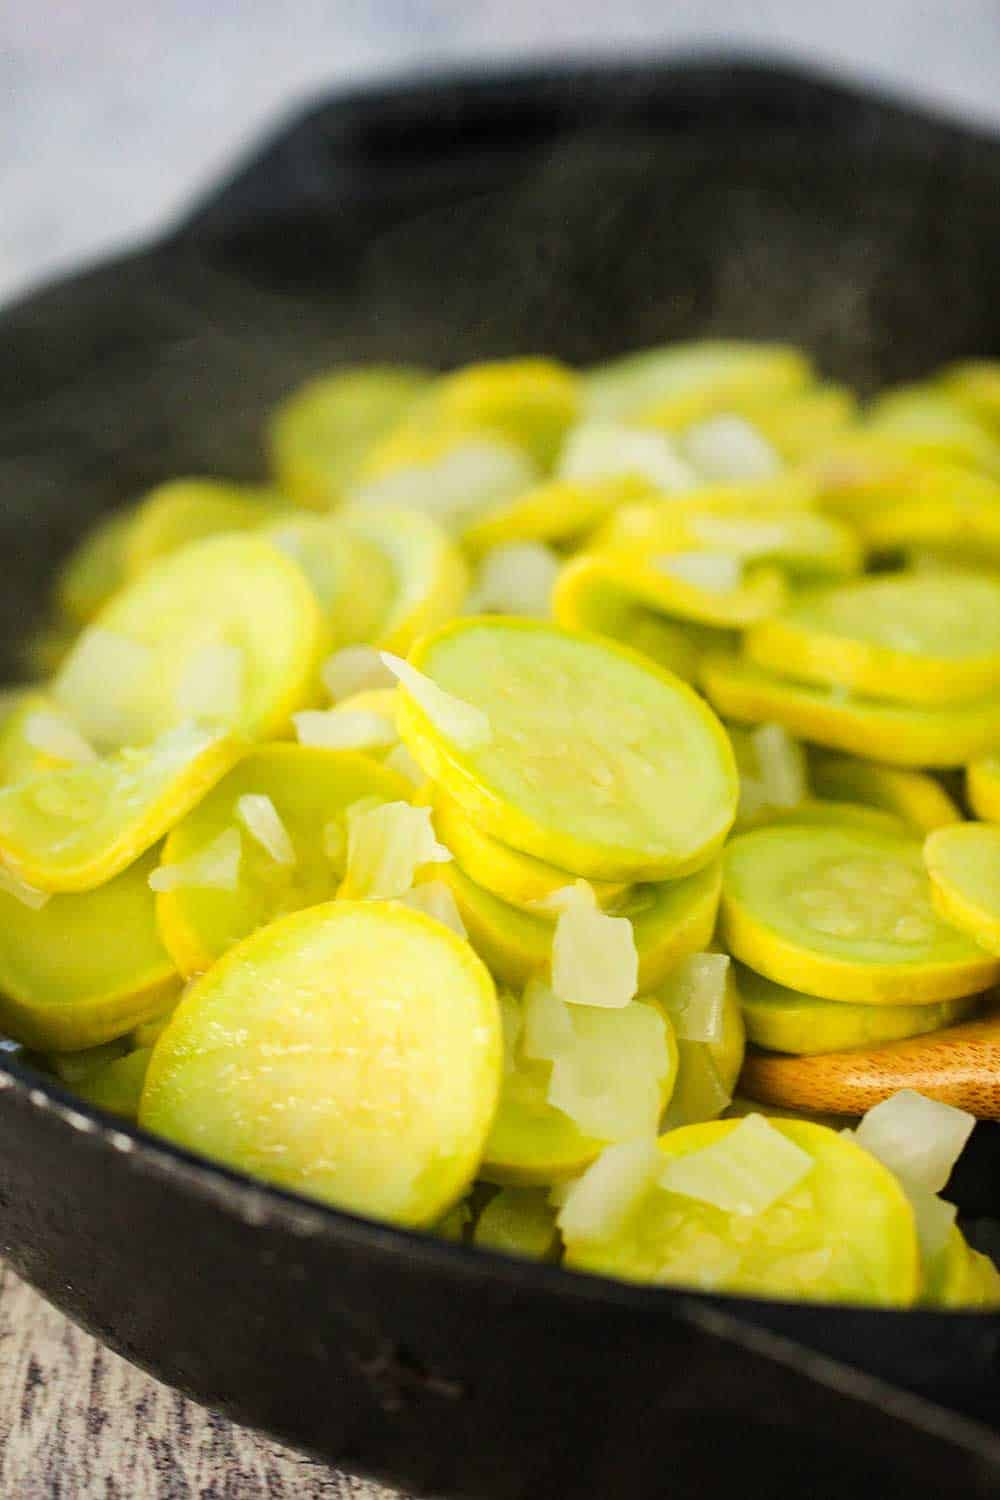 Yellow squash and chopped onion cooking in a large black cast iron skillet.